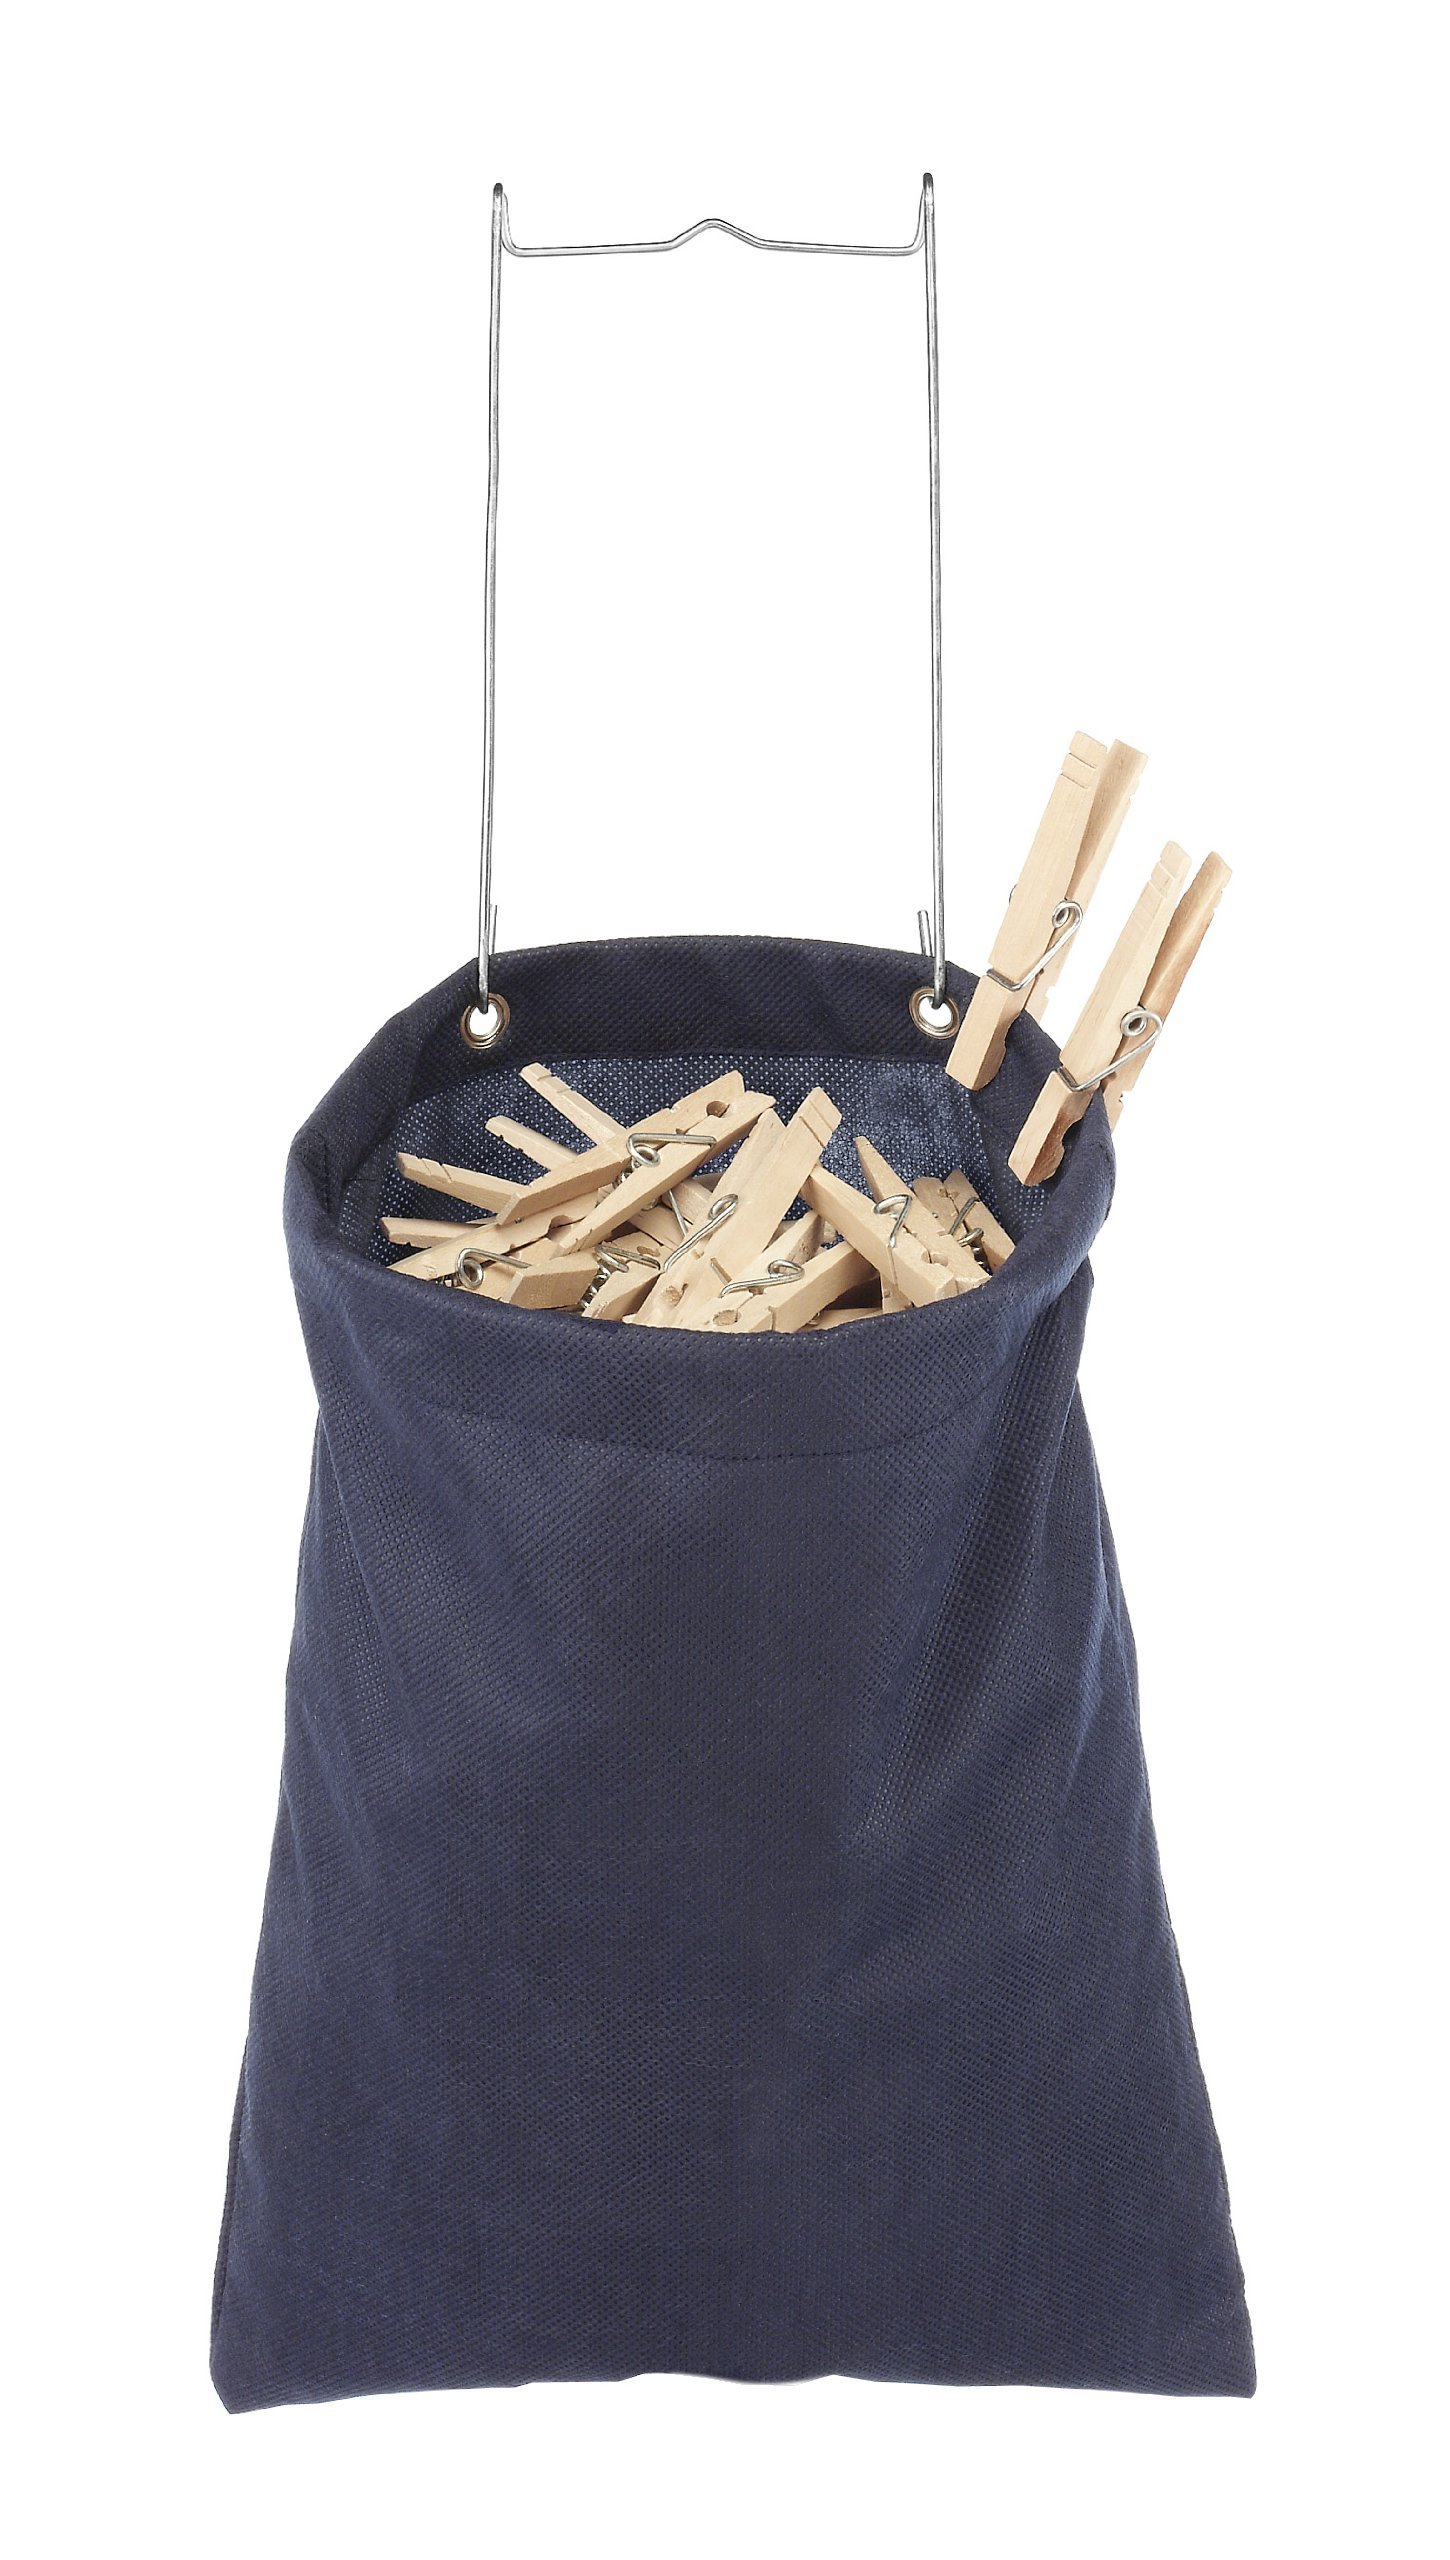 Whitmor Hanging Clothespin Bag Navy